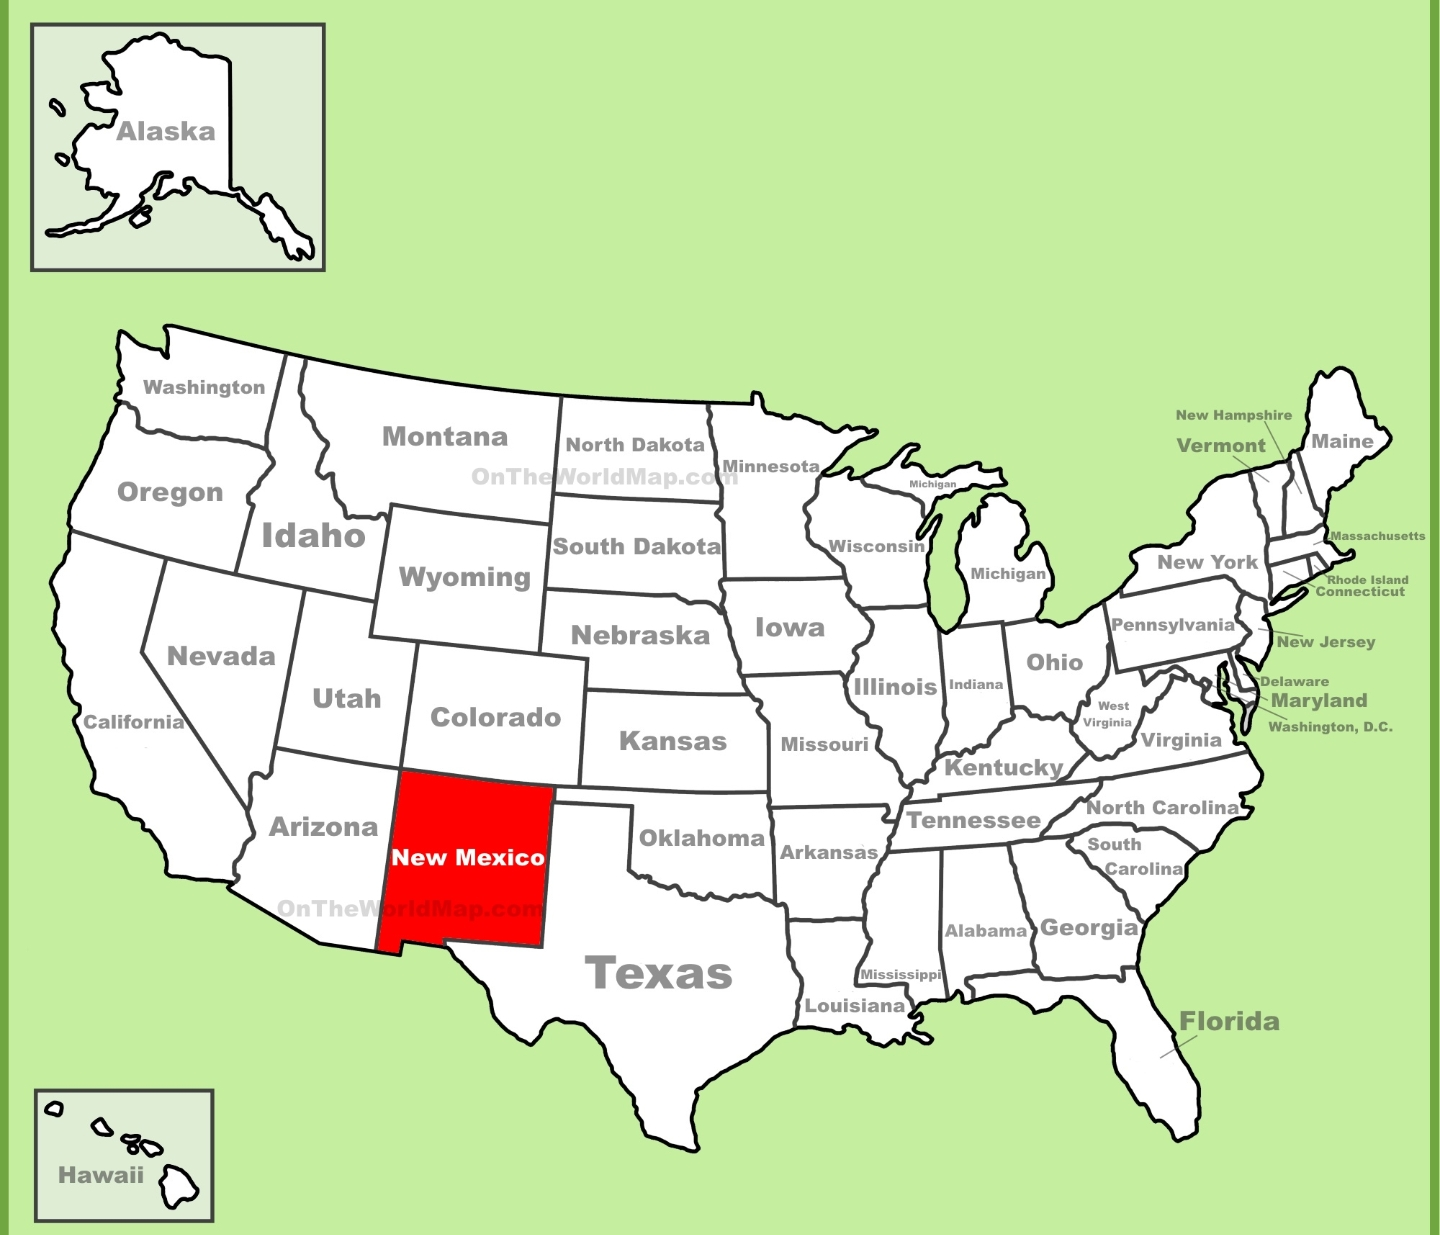 we are the only place in the united states to border 4 states at once you can visit the top left corner of my state and be in 4 places at once